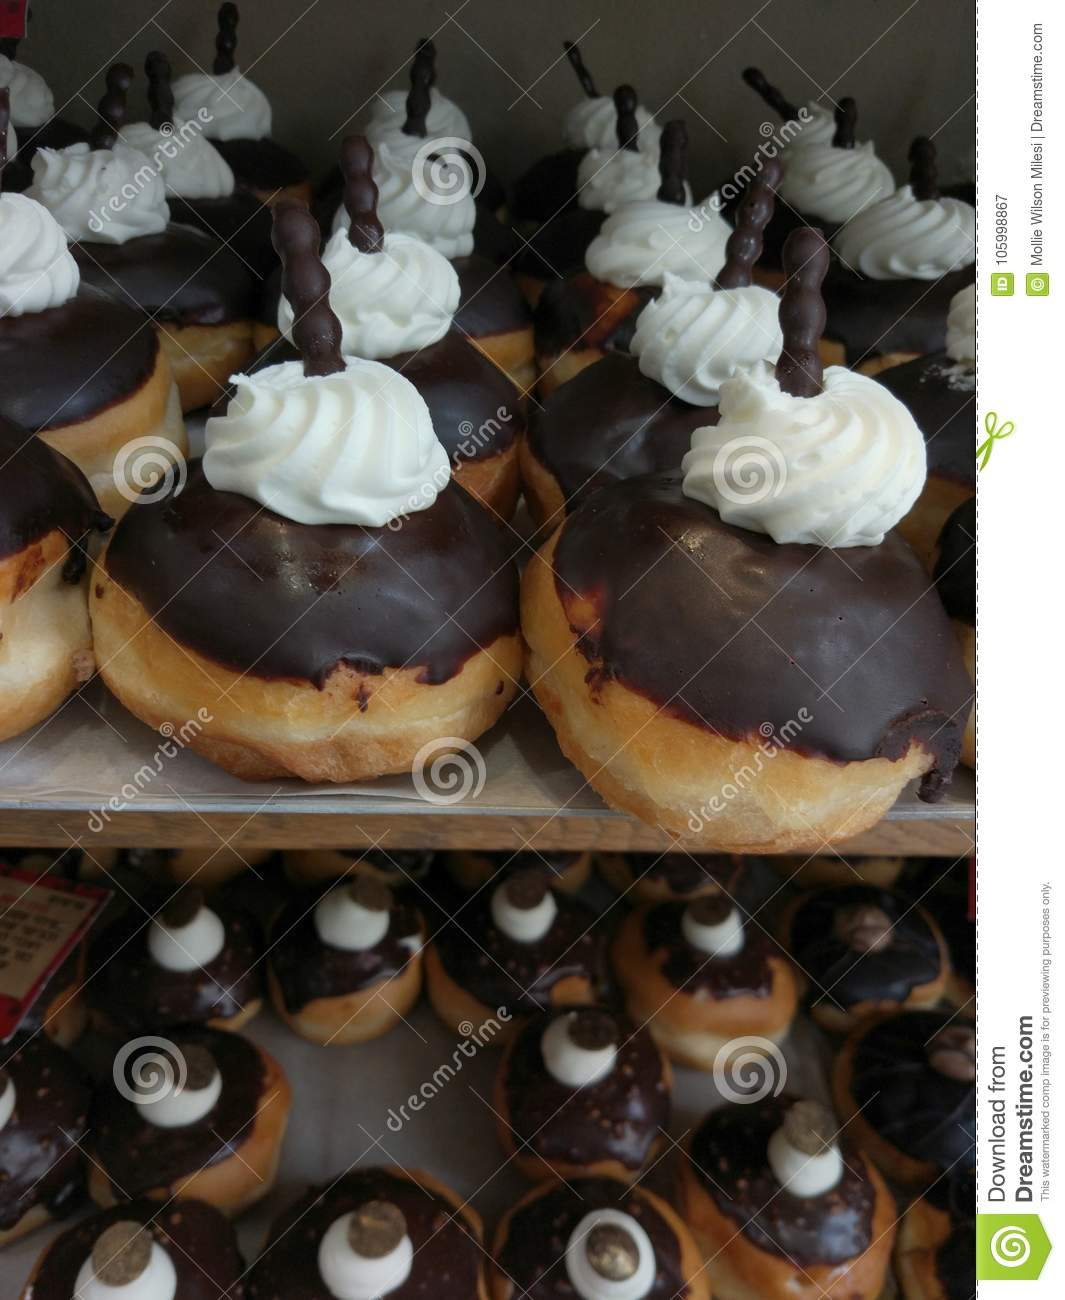 Sophisticated `sofgoniot`, donuts for the Jewish festival of Han